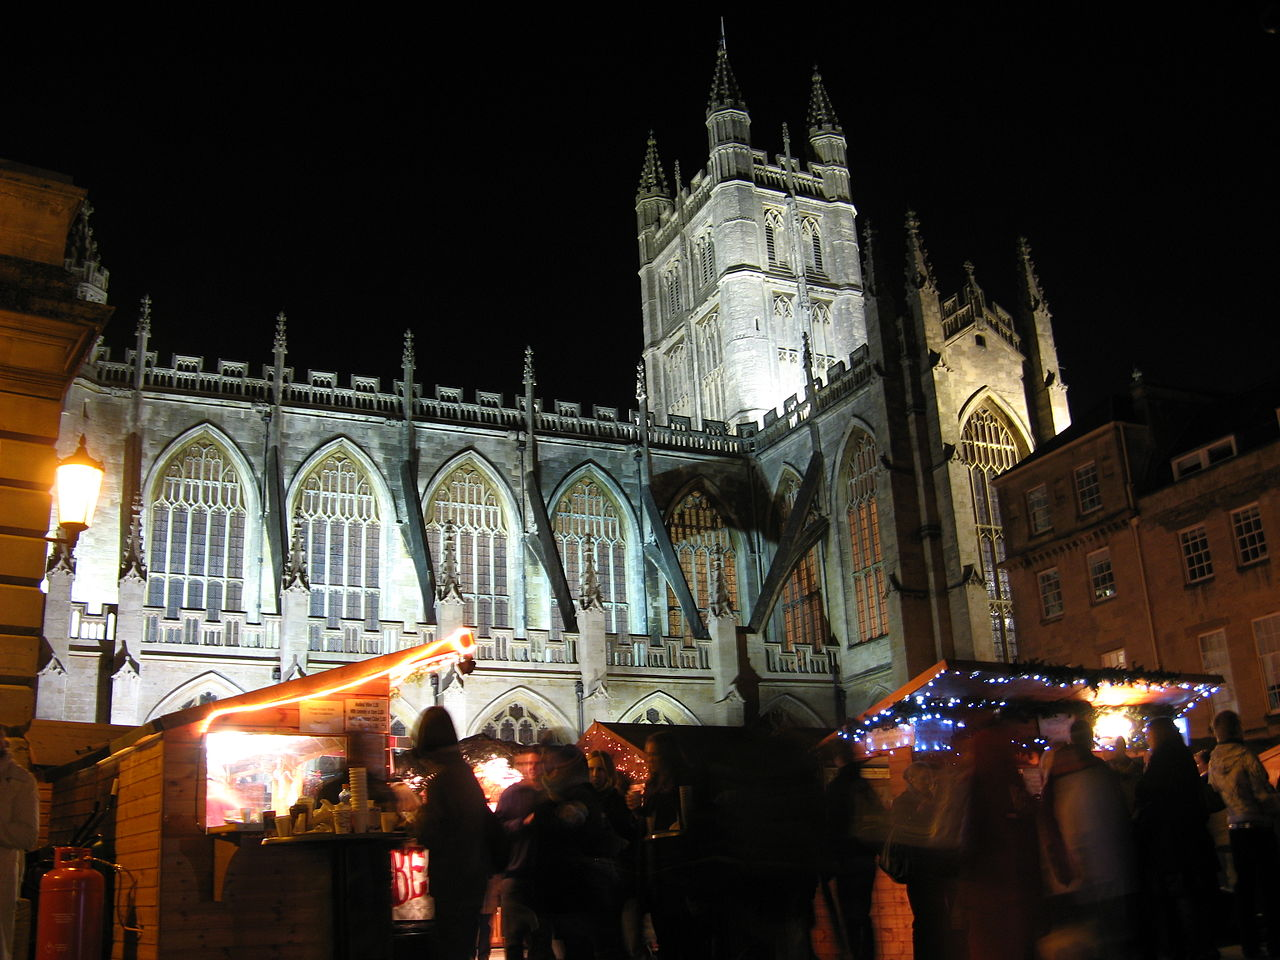 Christmas market in Bath, England. Credit Rwendland